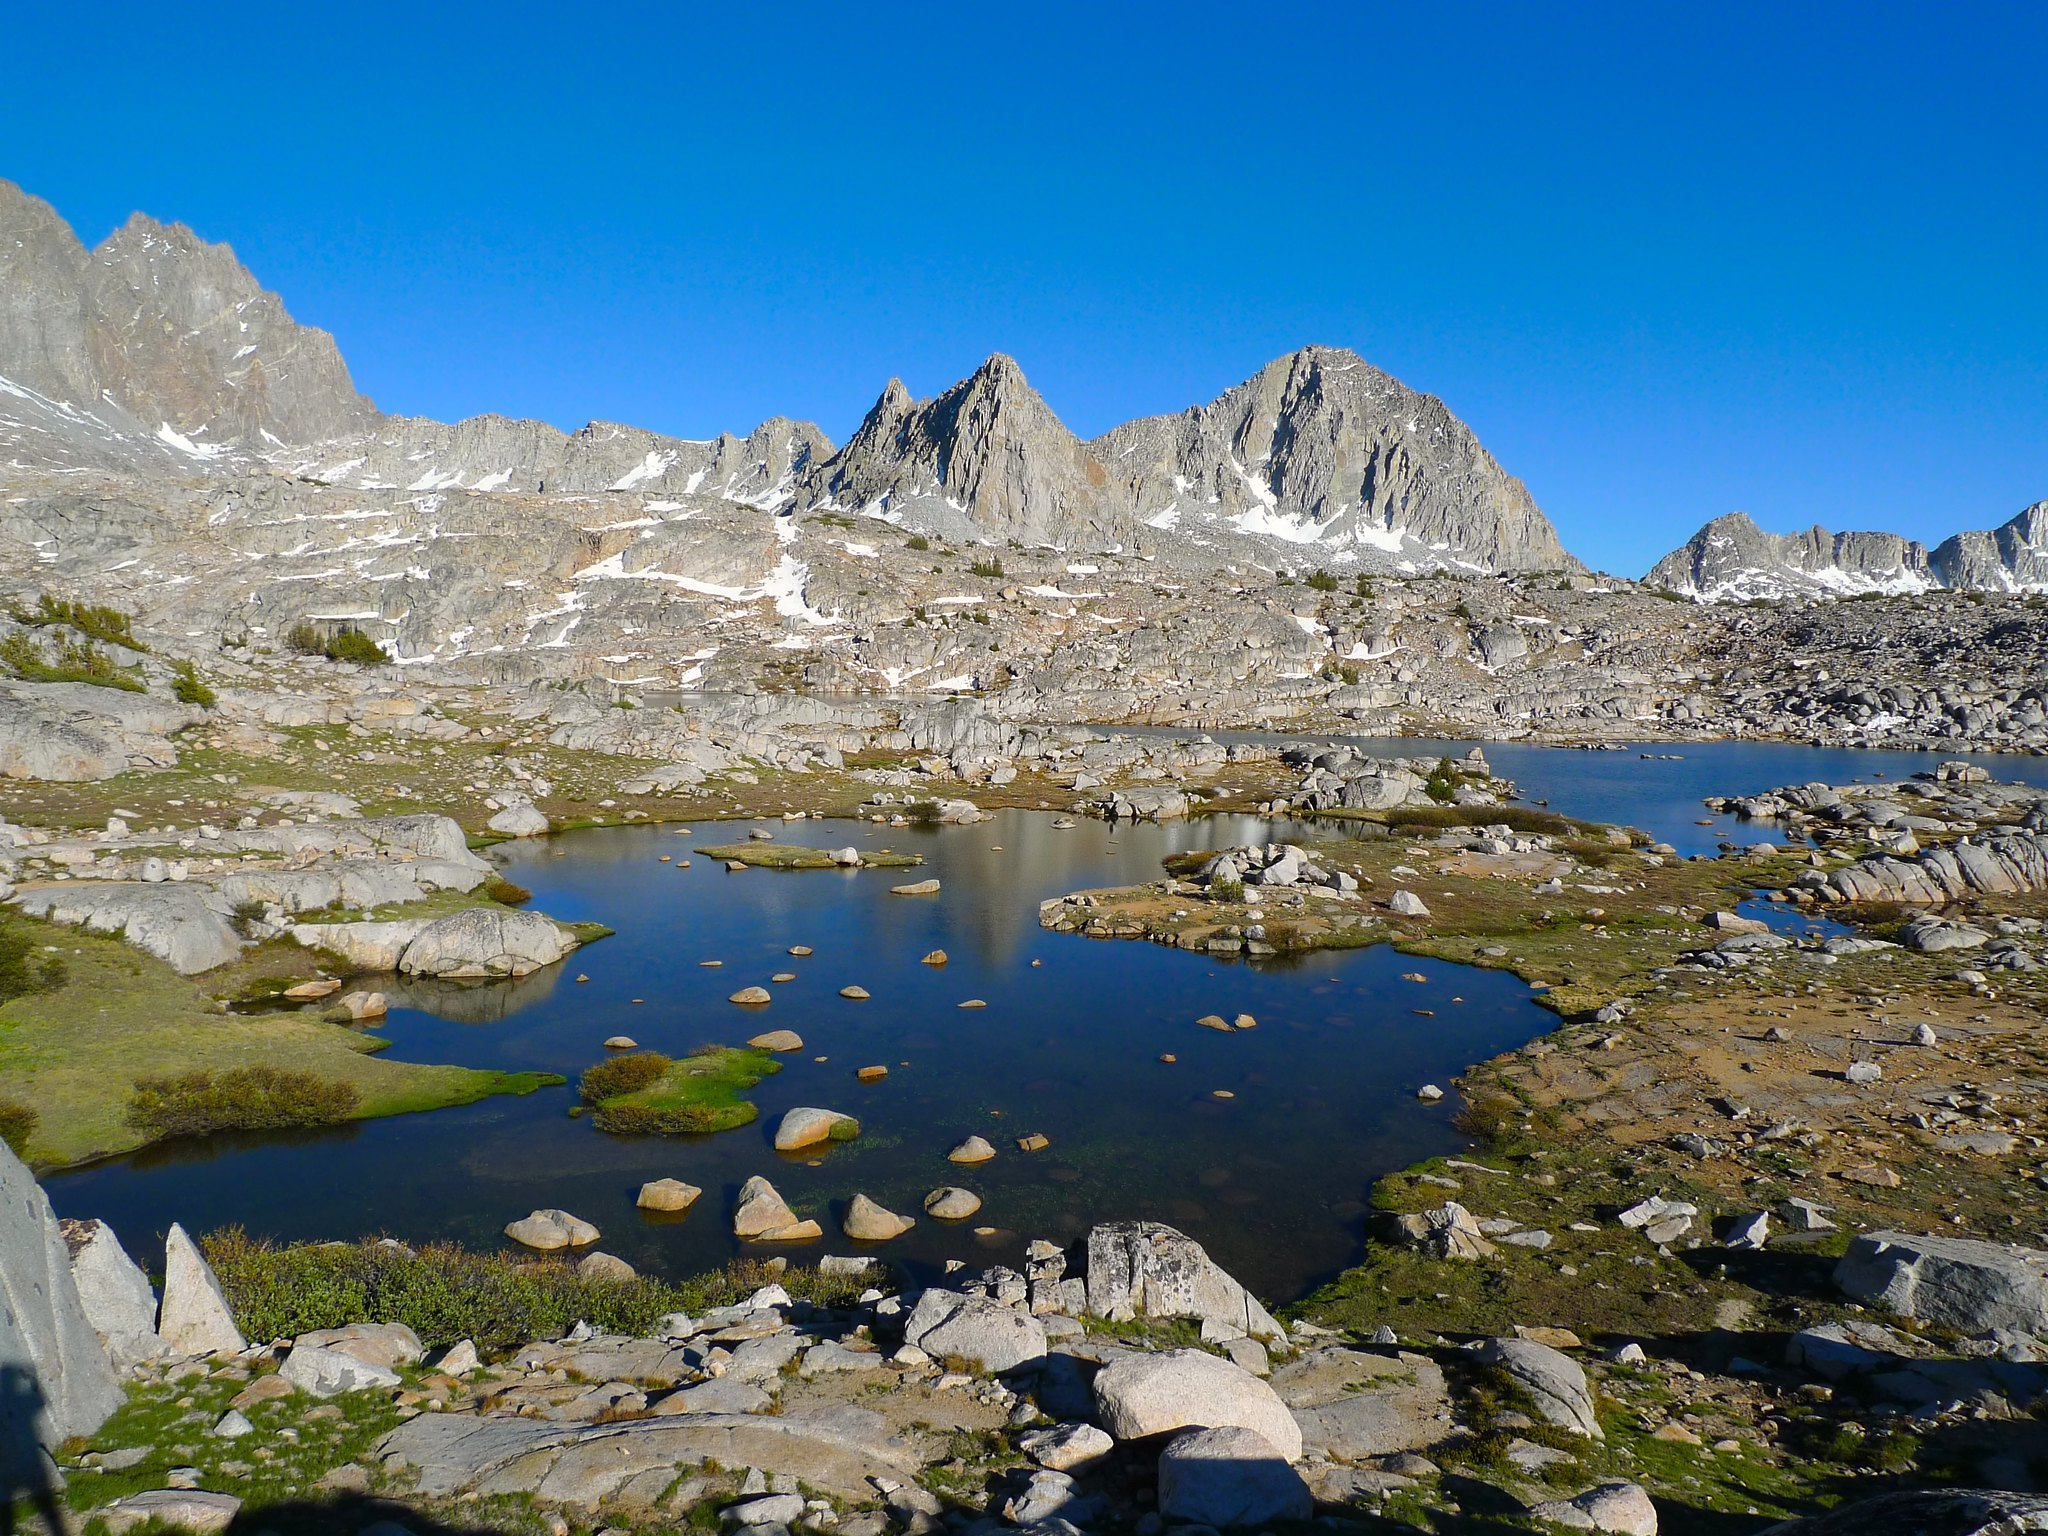 Isoceles and Columbine Peaks above the westernmost lake in upper Dusy Basin